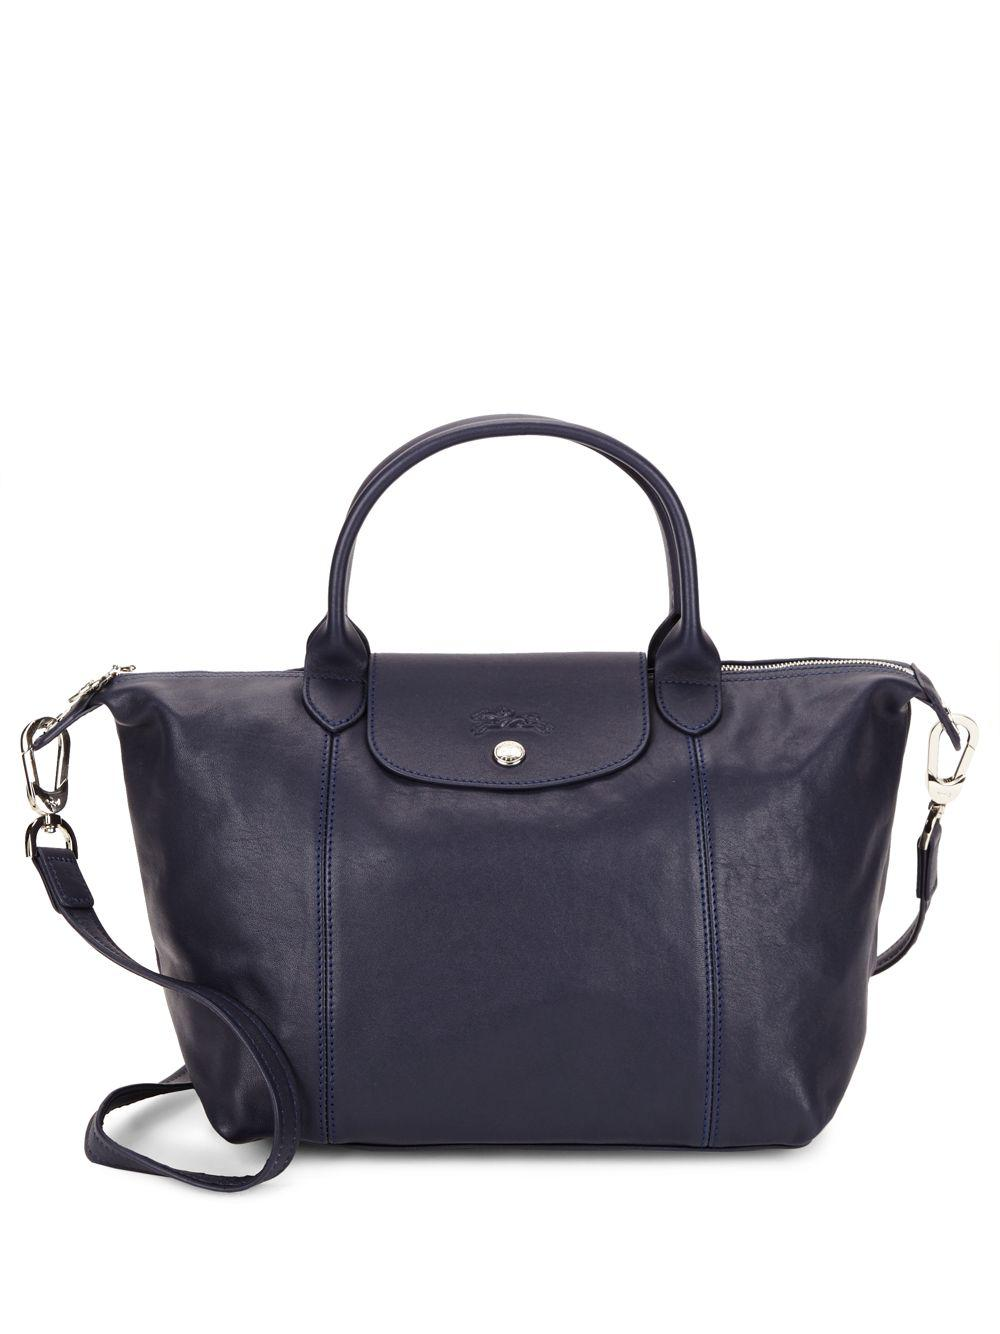 23dd1fc298e5 Longchamp Le Pliage Leather Tote in Blue - Lyst